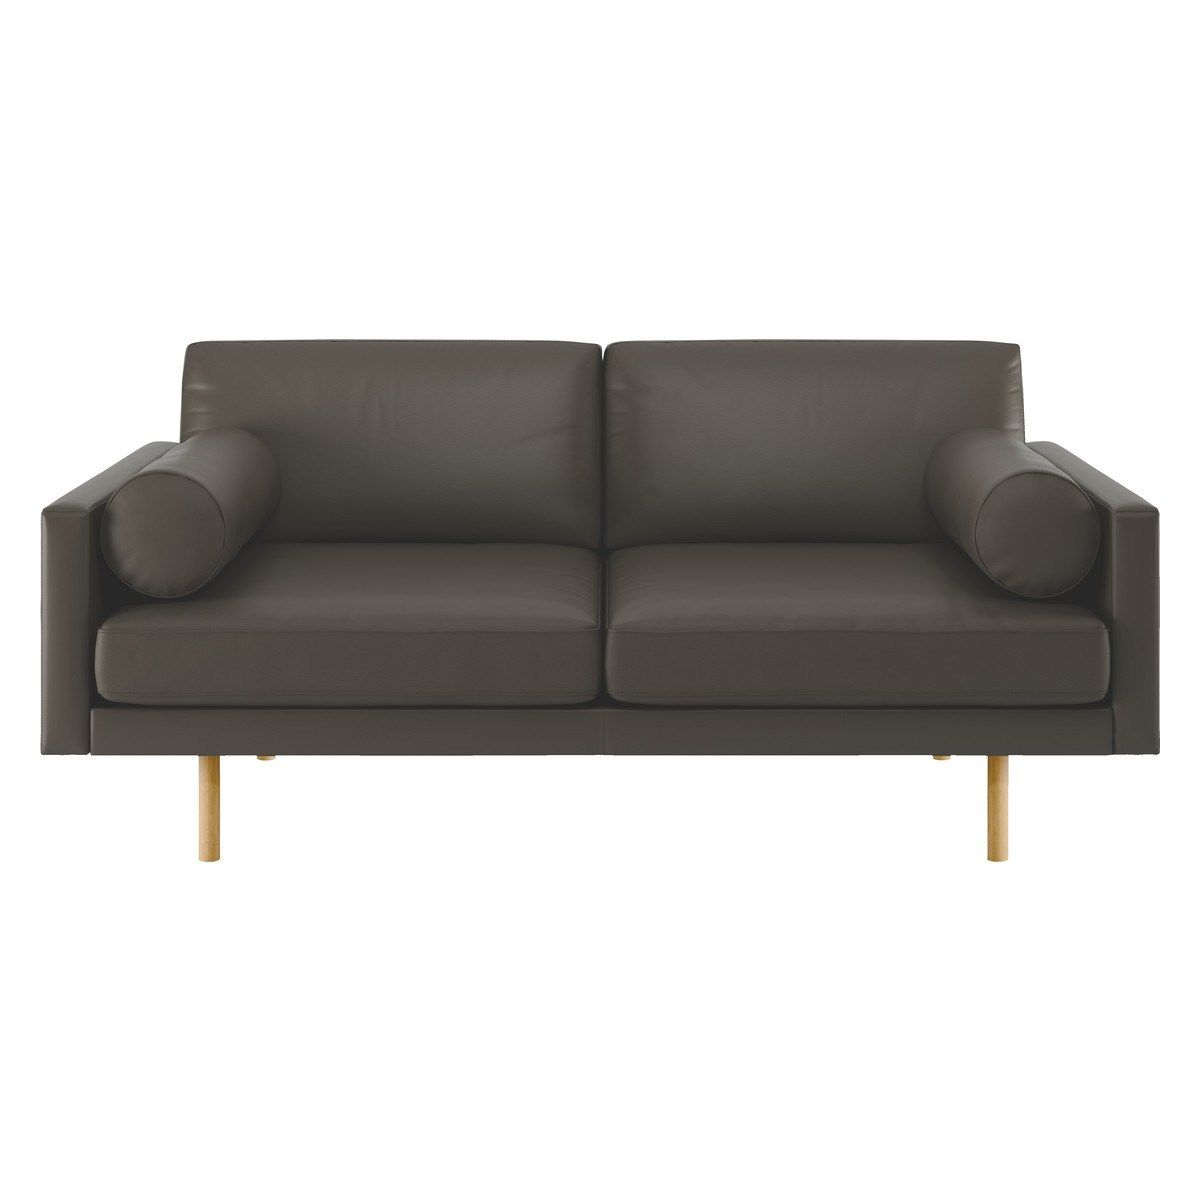 The Luxurious Spencer Grey Leather 2 Seater Sofa With Oak Legs Is A Sleek Design That Combines A Slender Streamlined Sh 2 Seater Sofa Seater Sofa Leather Sofa